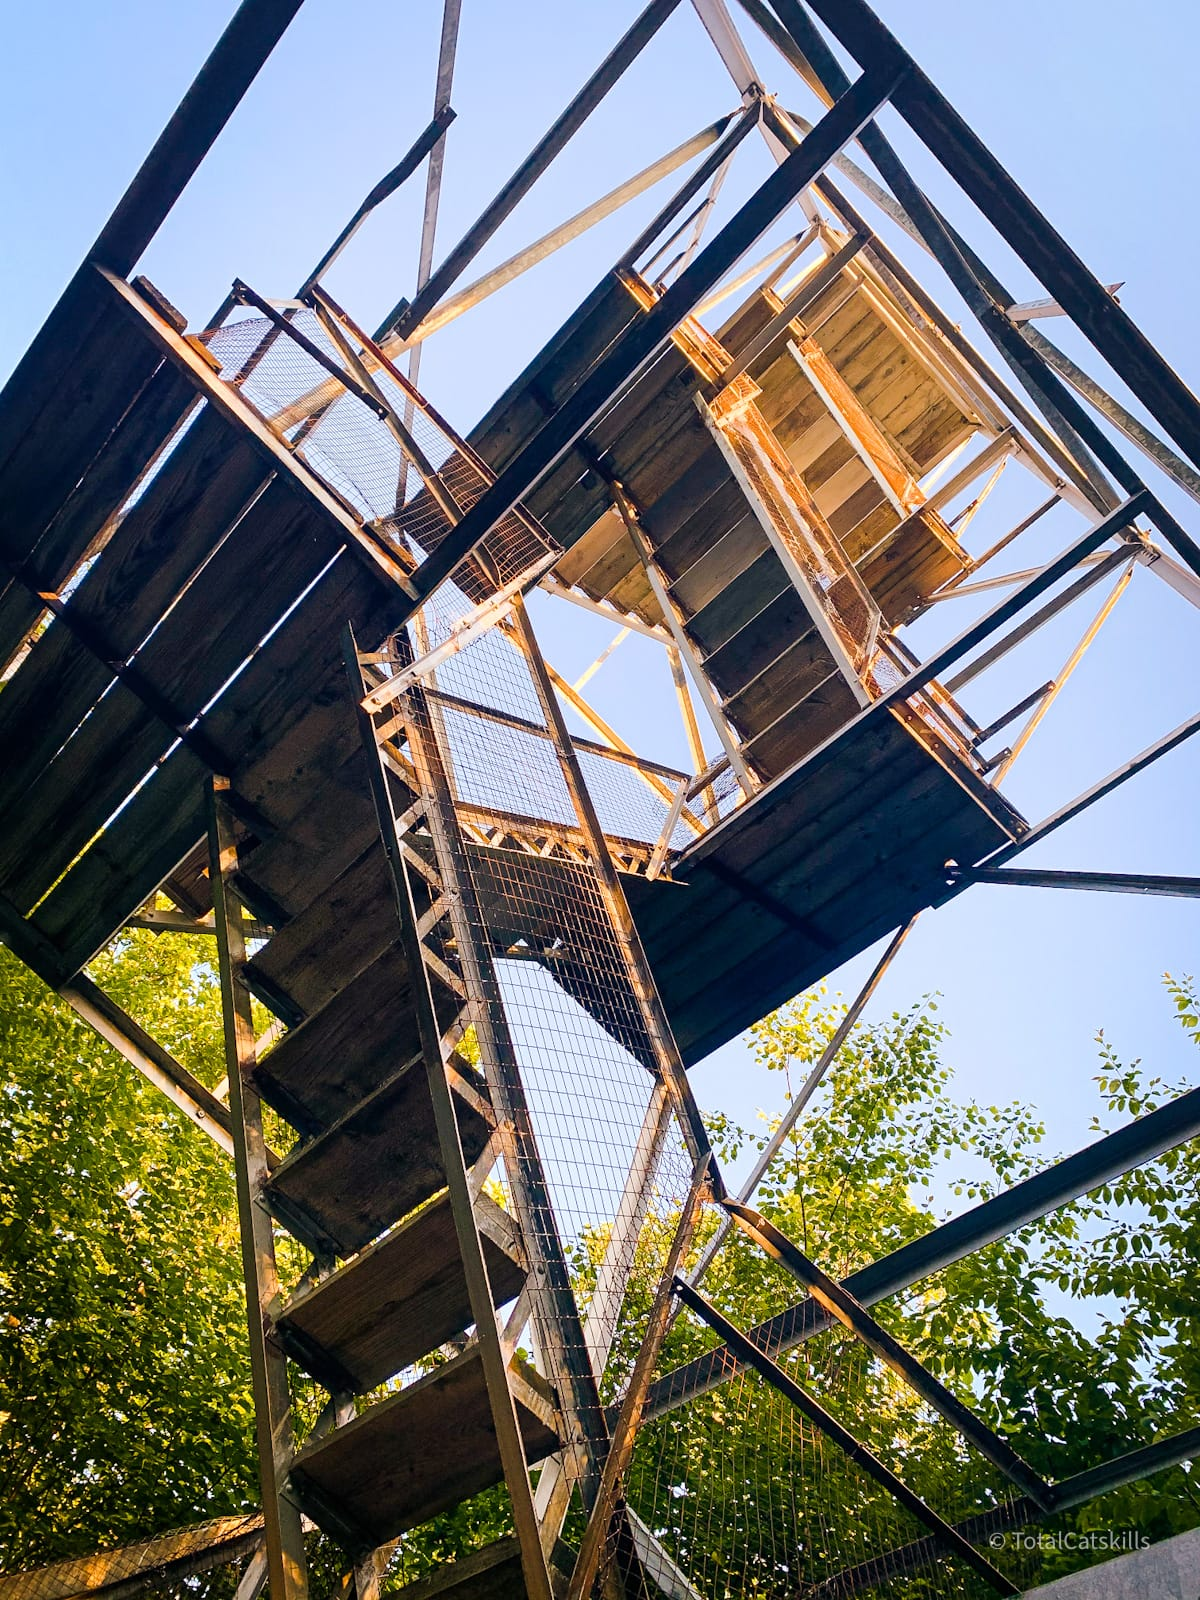 fire tower seen from the bottom